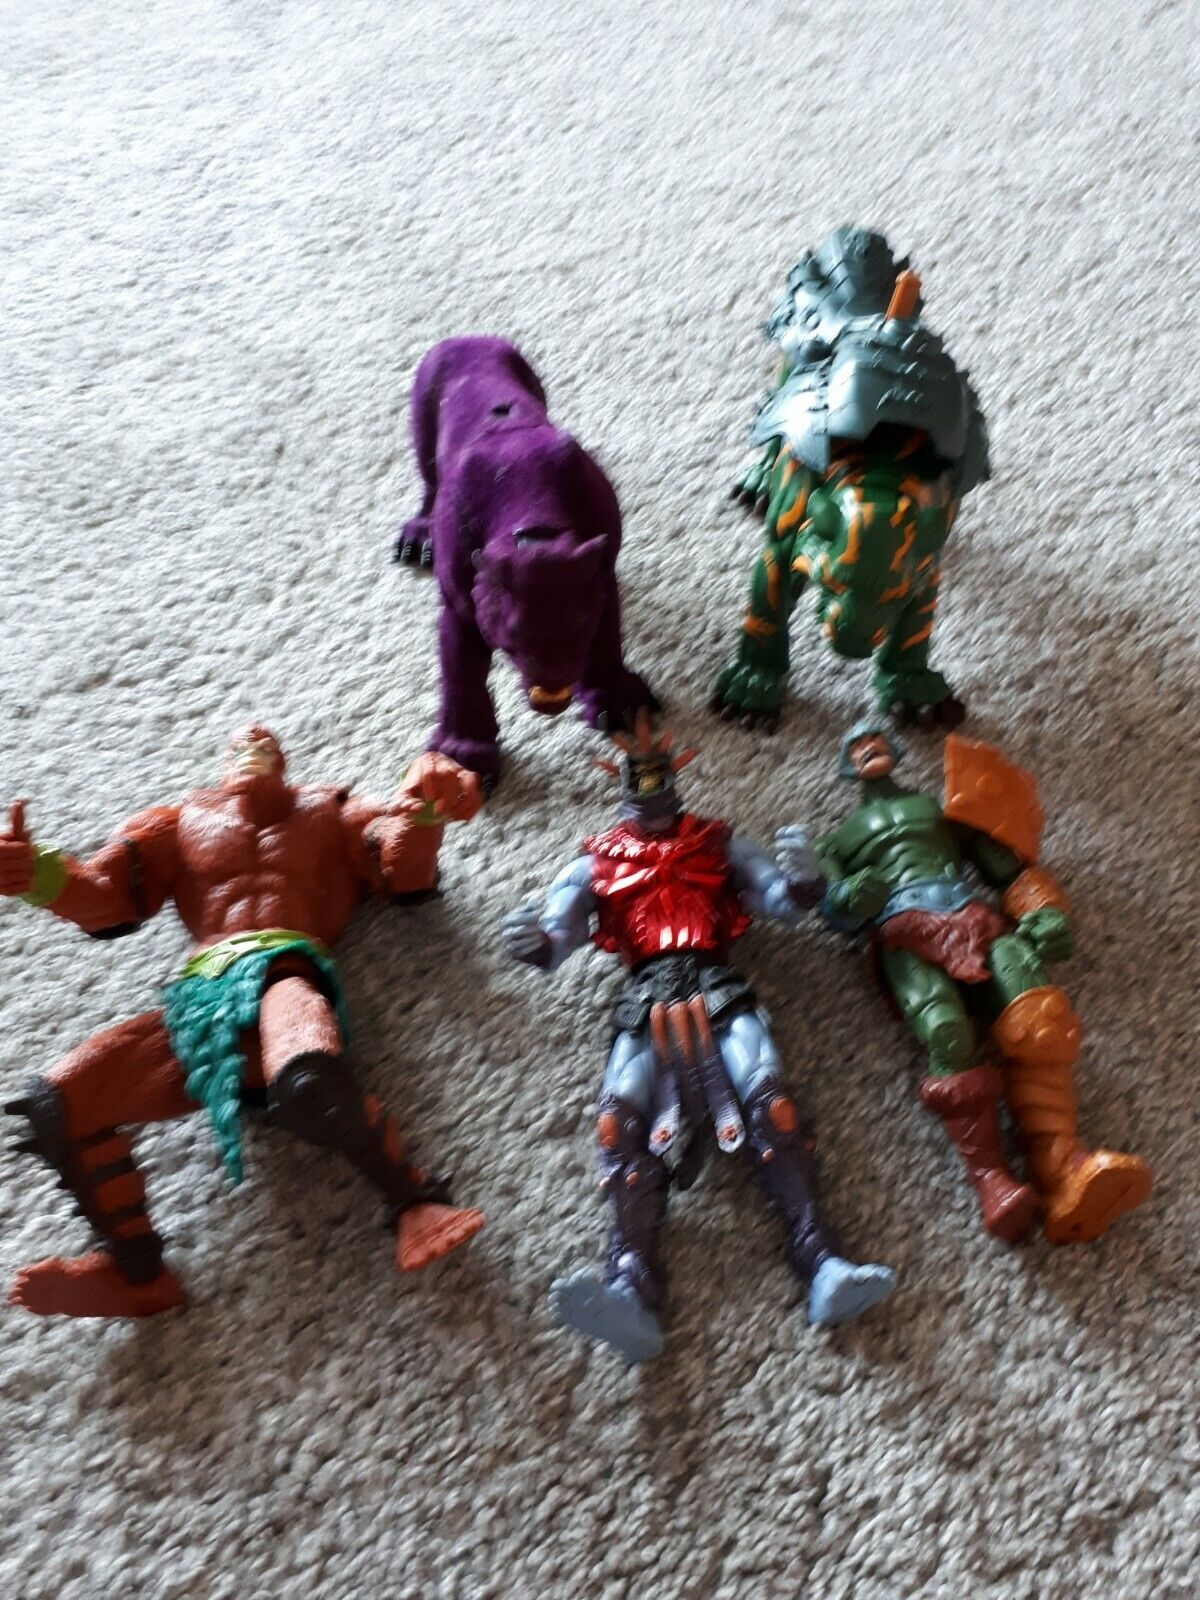 He Man  Bundle, Figures, and cats